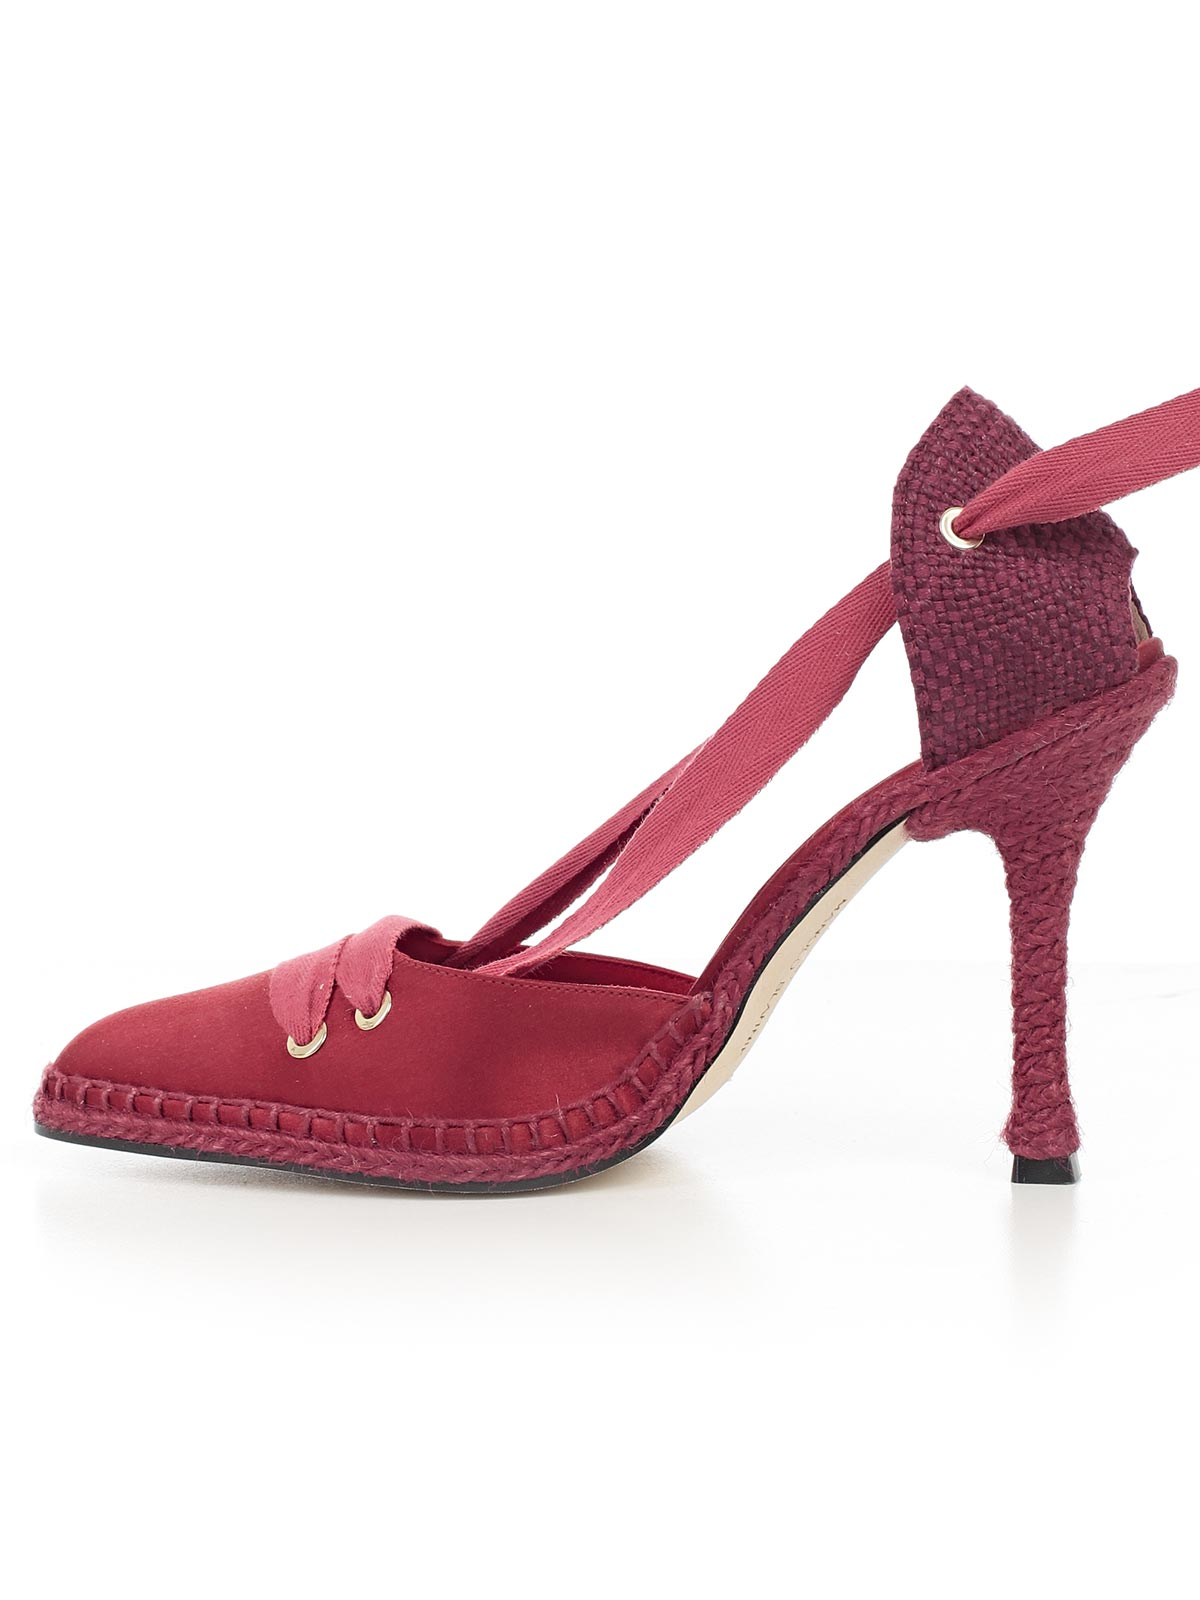 Picture of Castaner By Manolo Blahnik Footwear